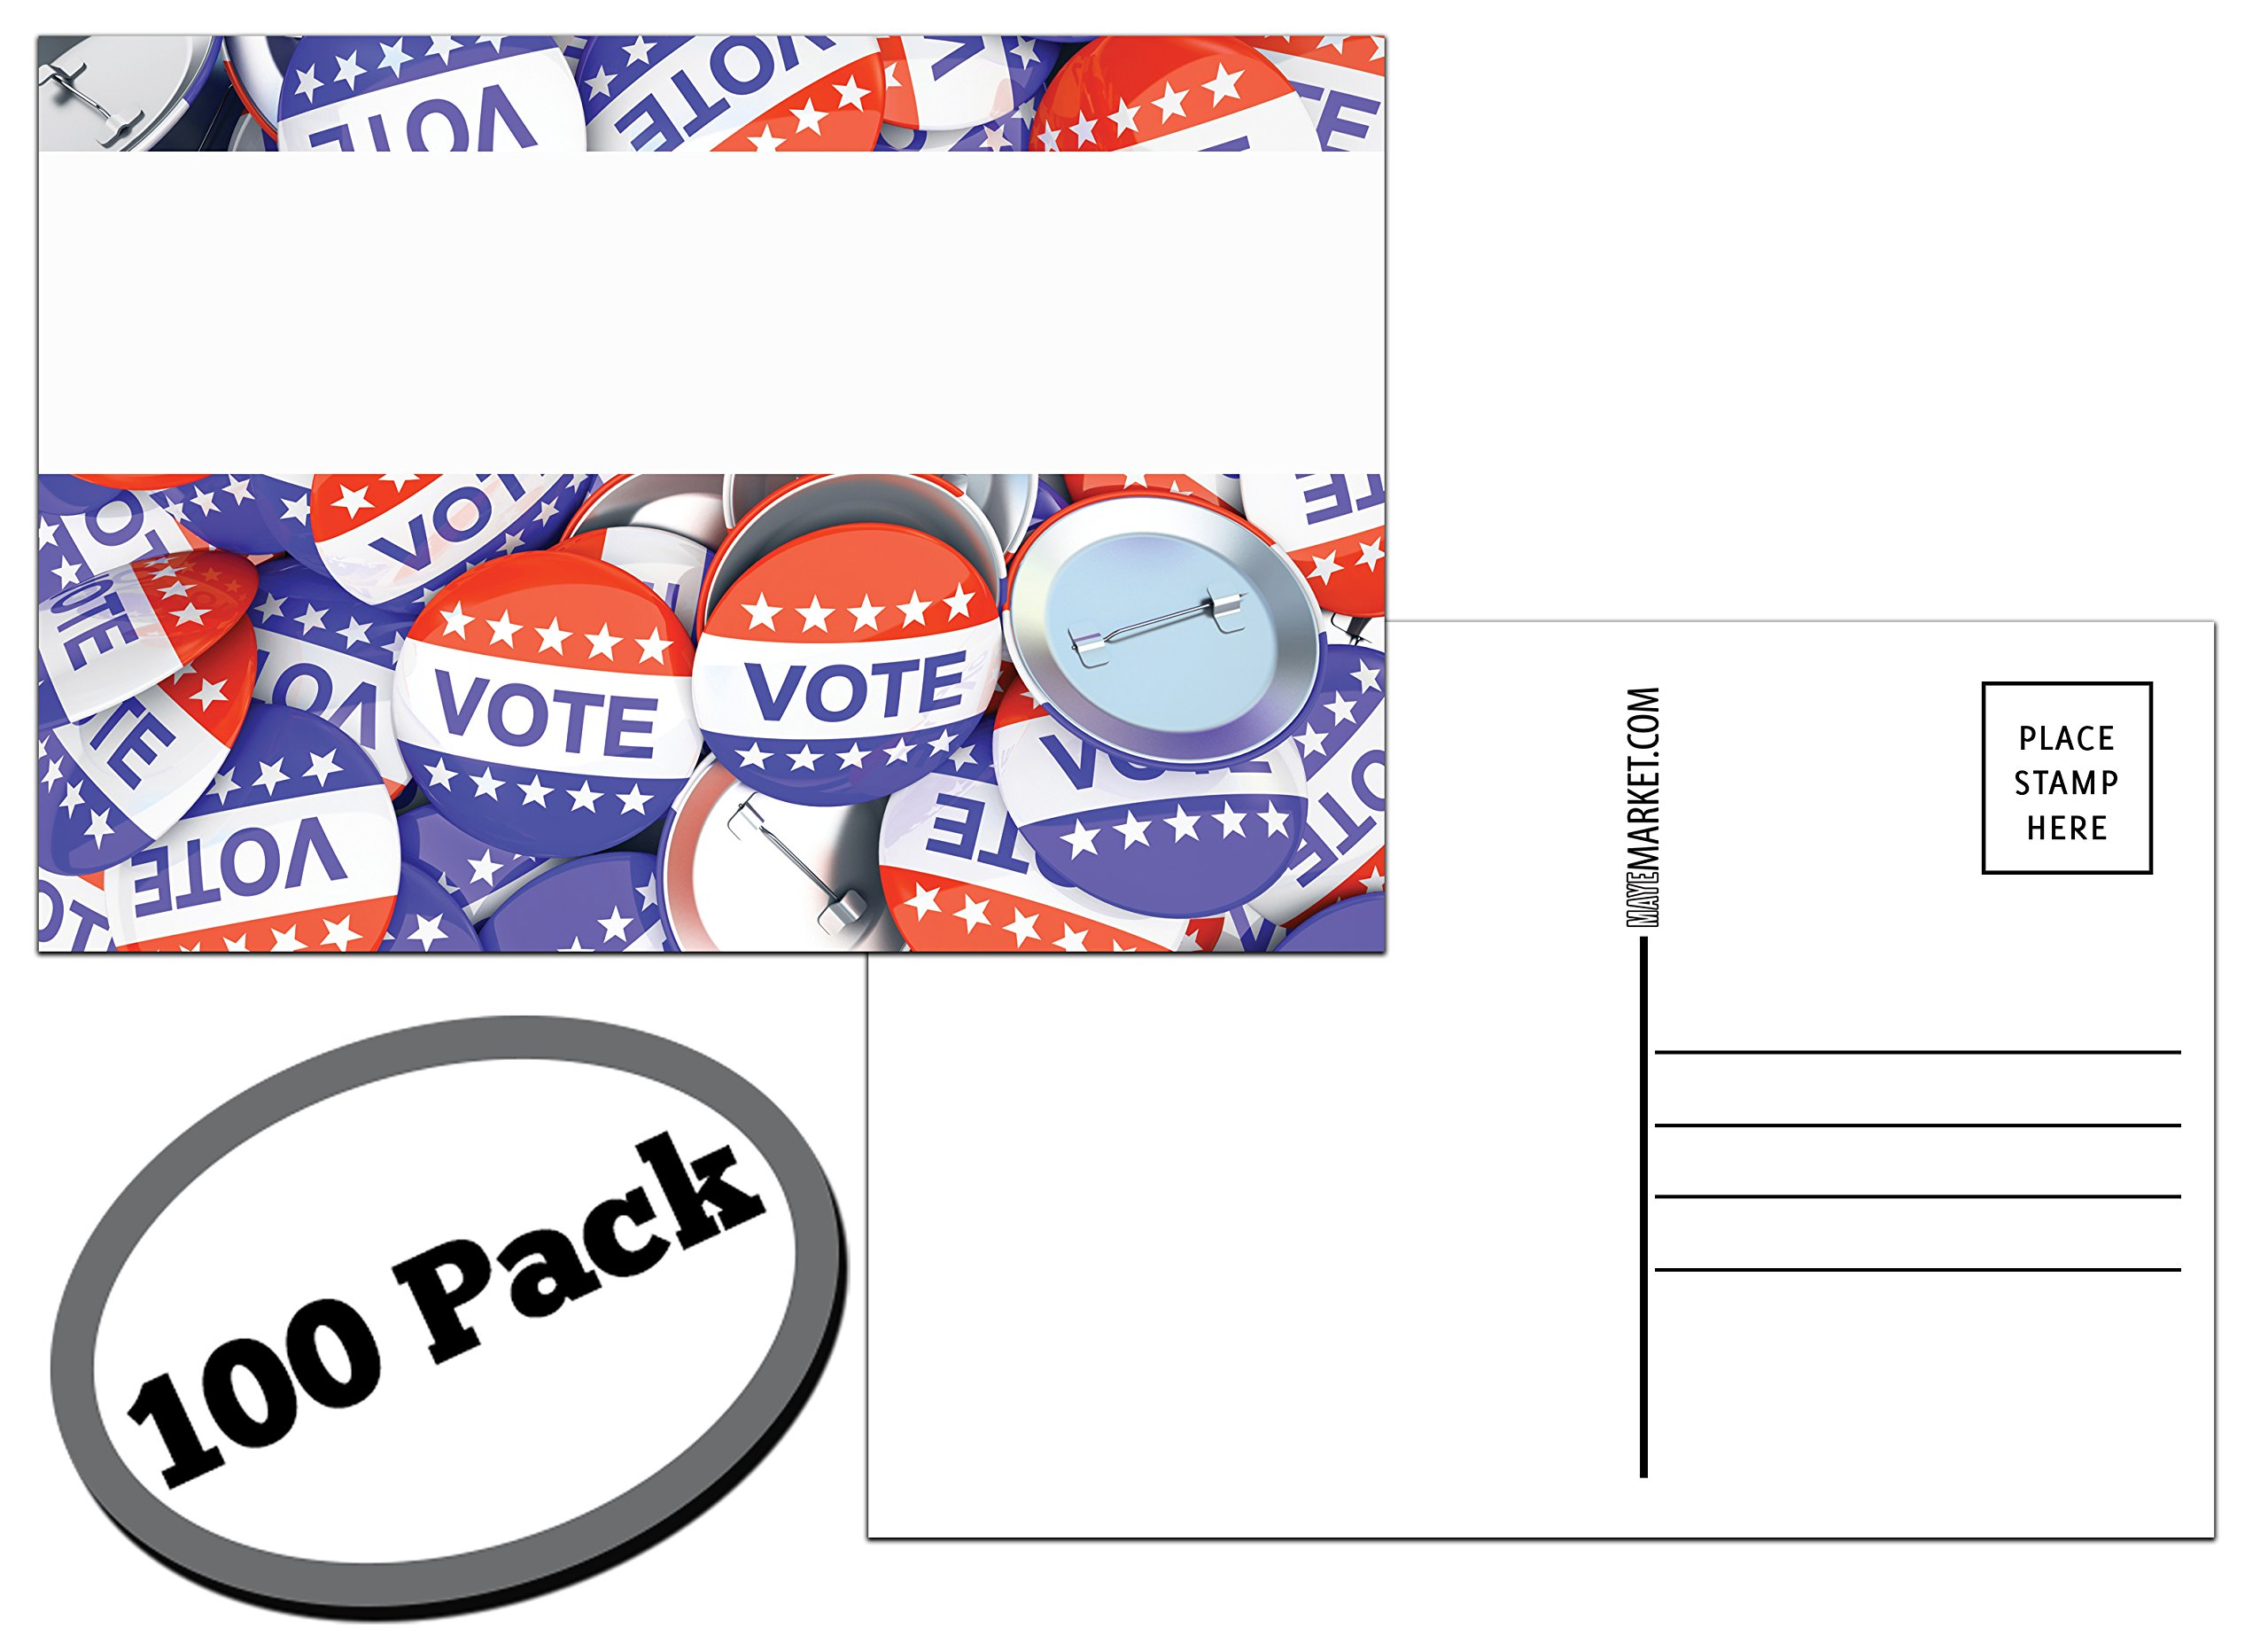 100 Pack of Blank Postcards. Each Post Card in This Patriotic, Bulk Set is 4 x 6, USPS Compliant (mailable), and USA Made. Mail to Voters to get Votes. Flip Side is Plain White and unused. (Buttons) by Maye Market